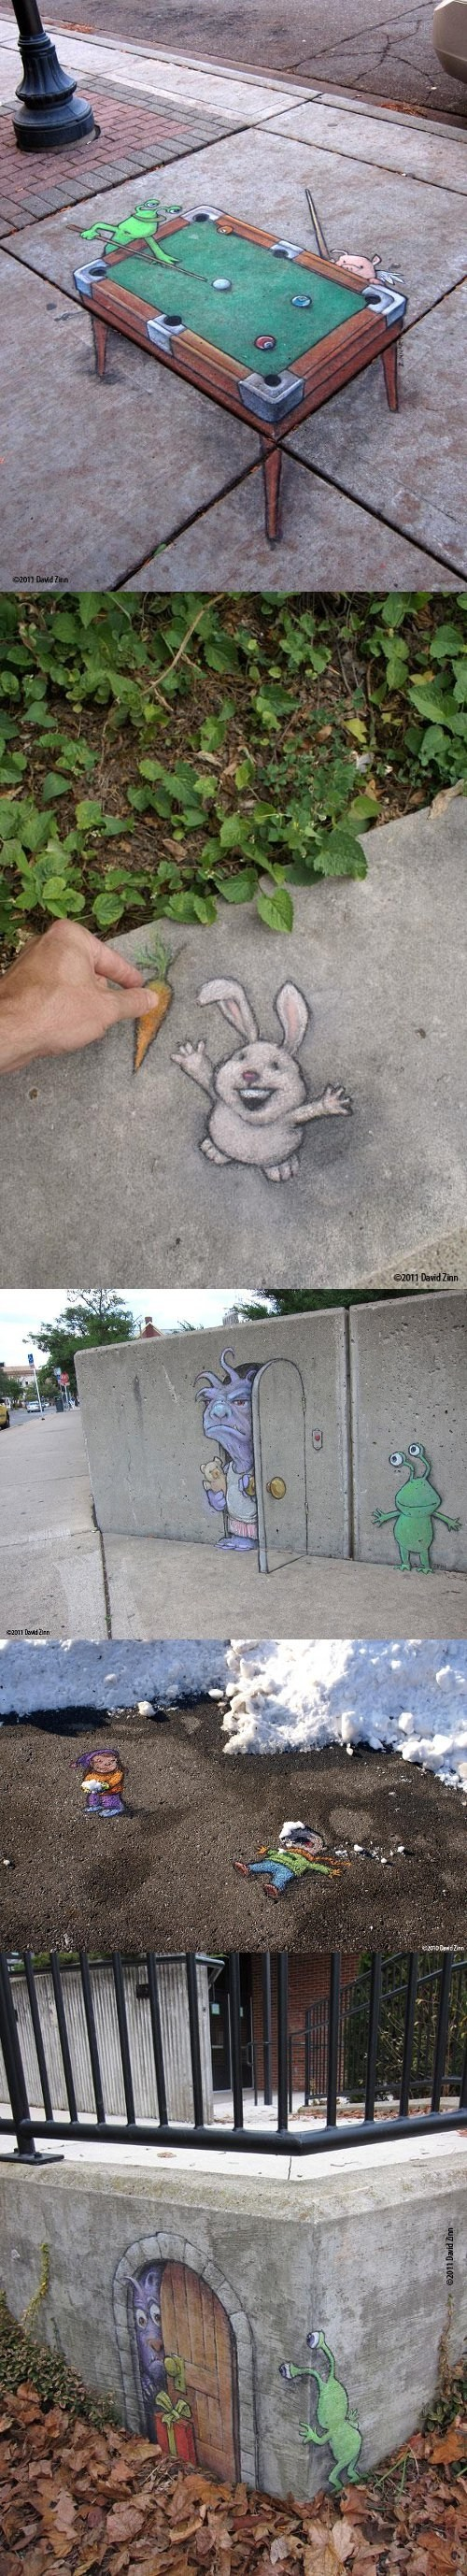 Chalk Art by David Zinn